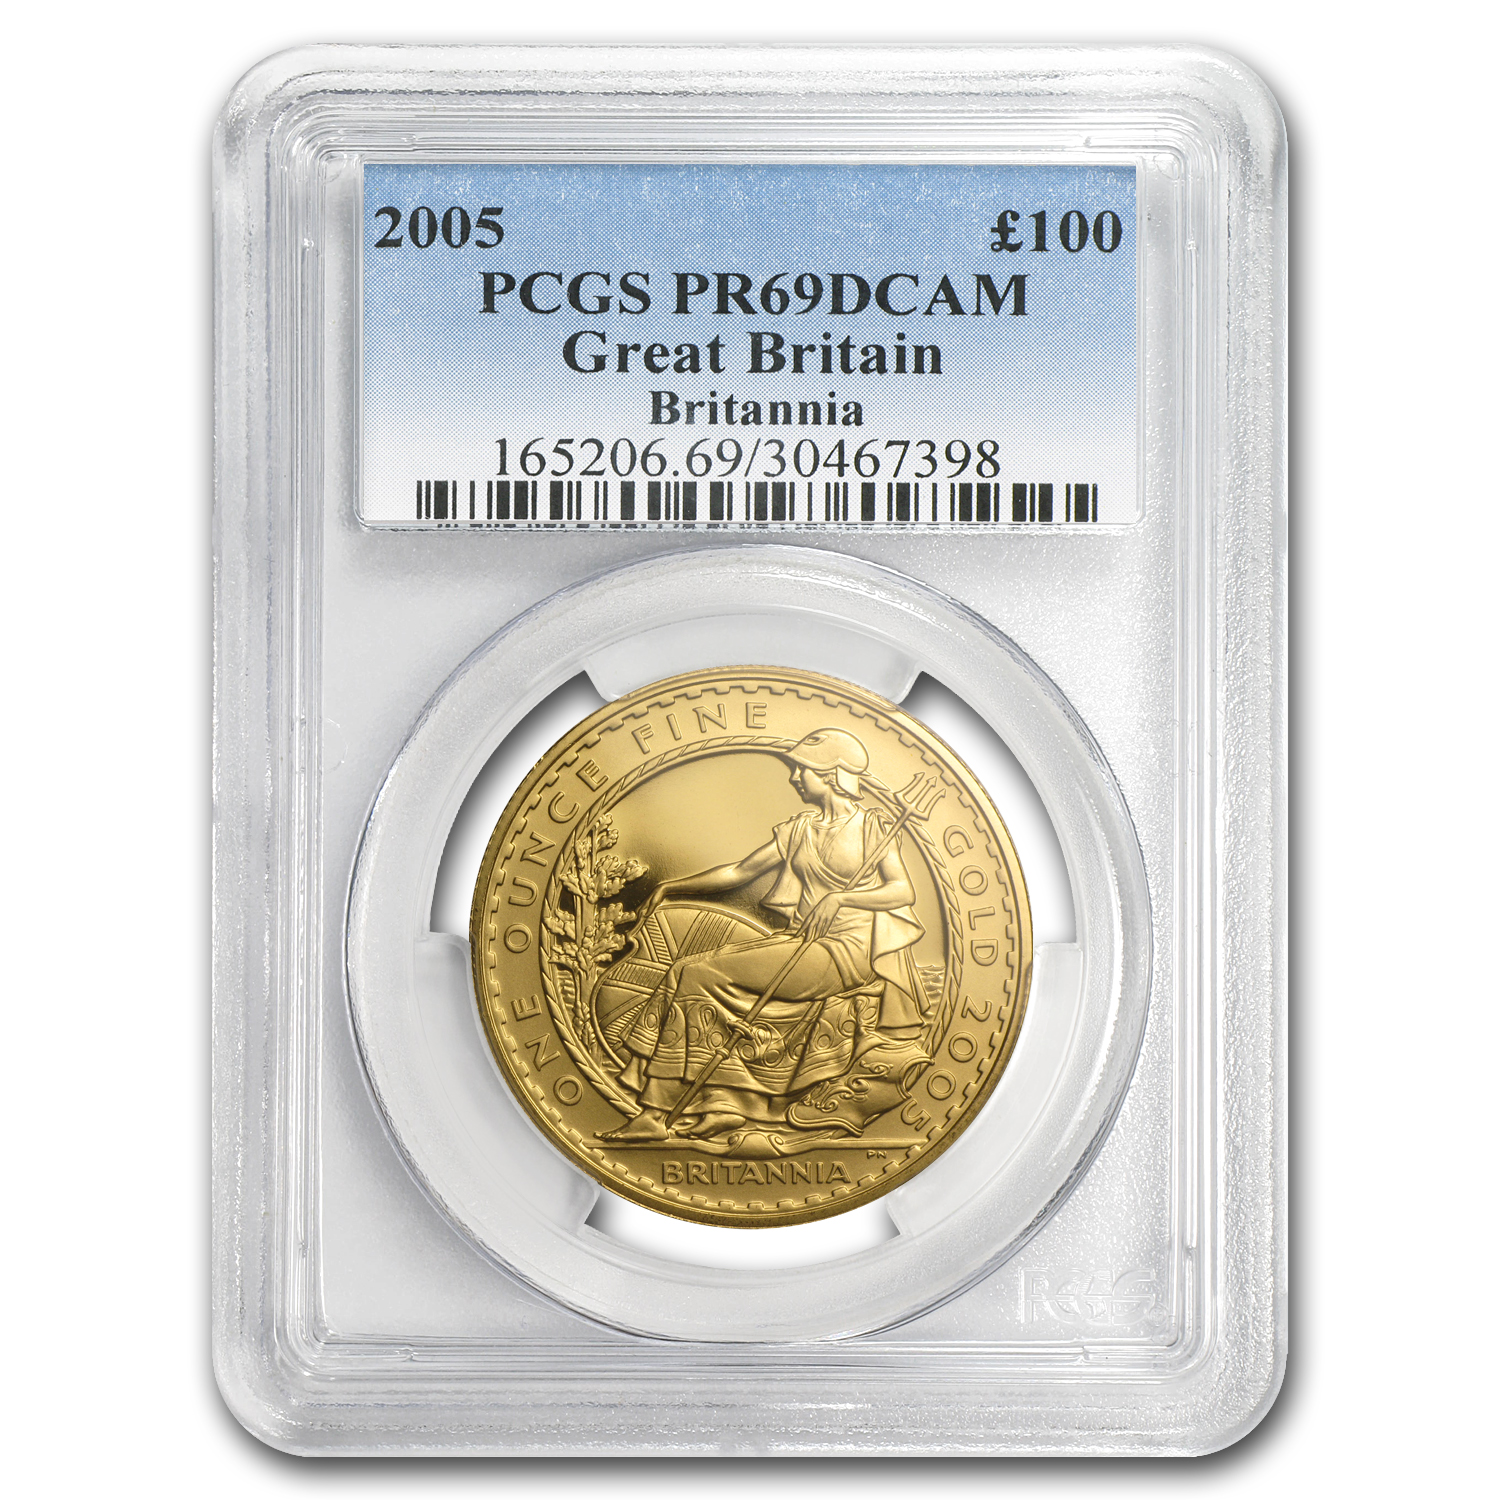 2005 Great Britain 1 oz Gold Britannia PR-69 PCGS